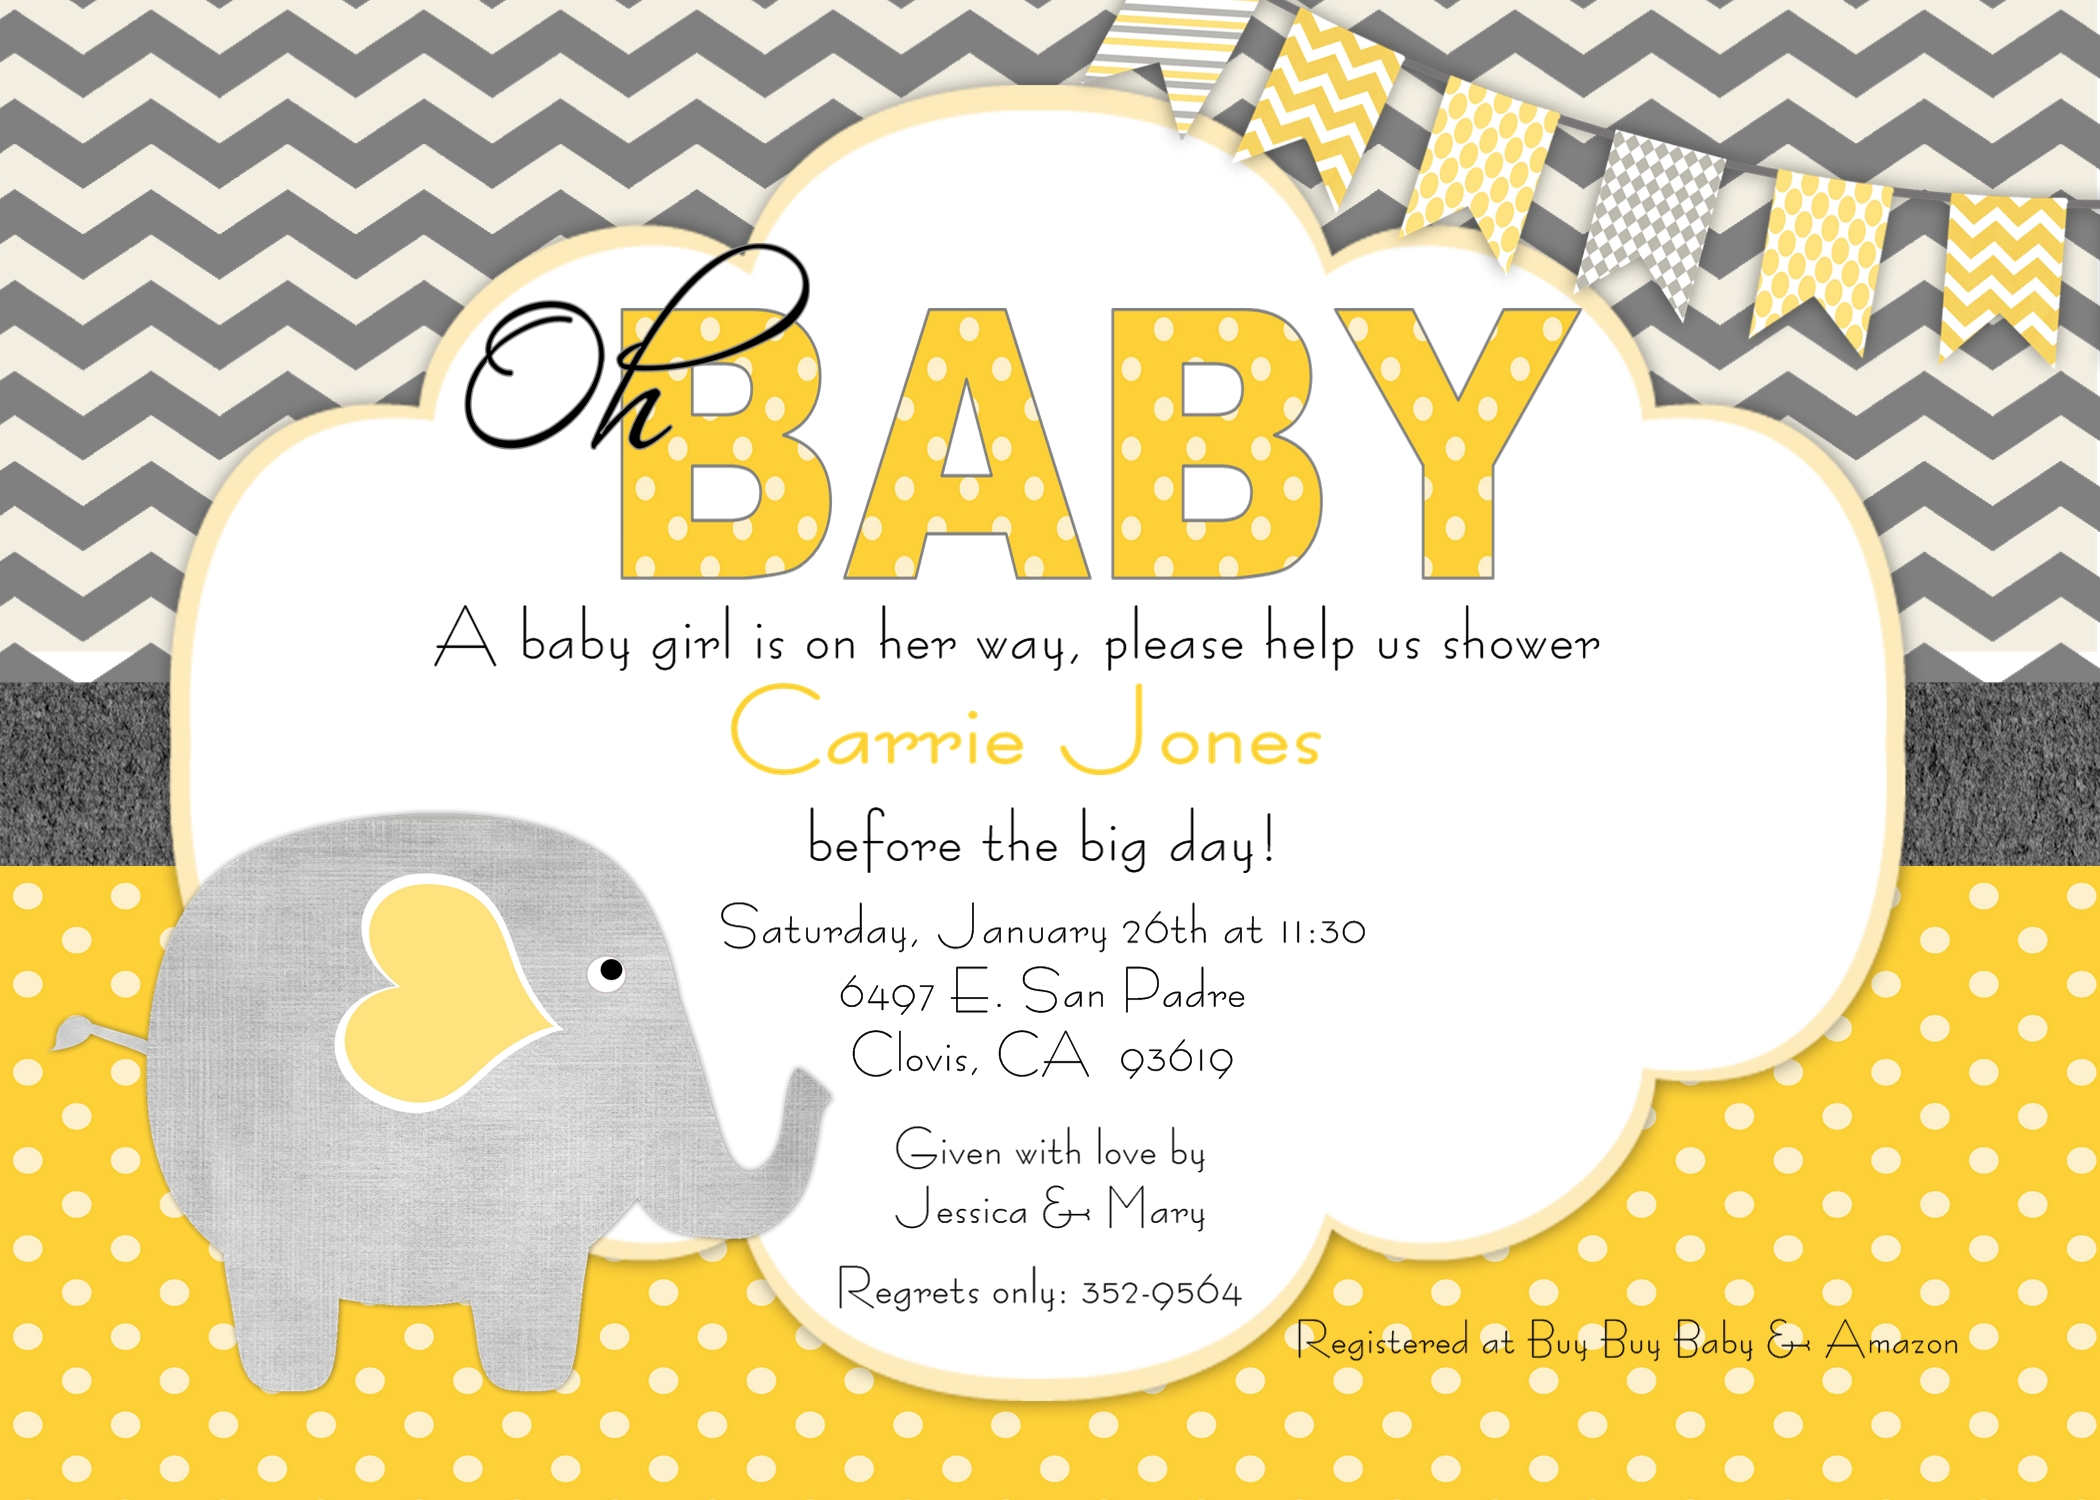 Baby Shower Email Invitation Ideas